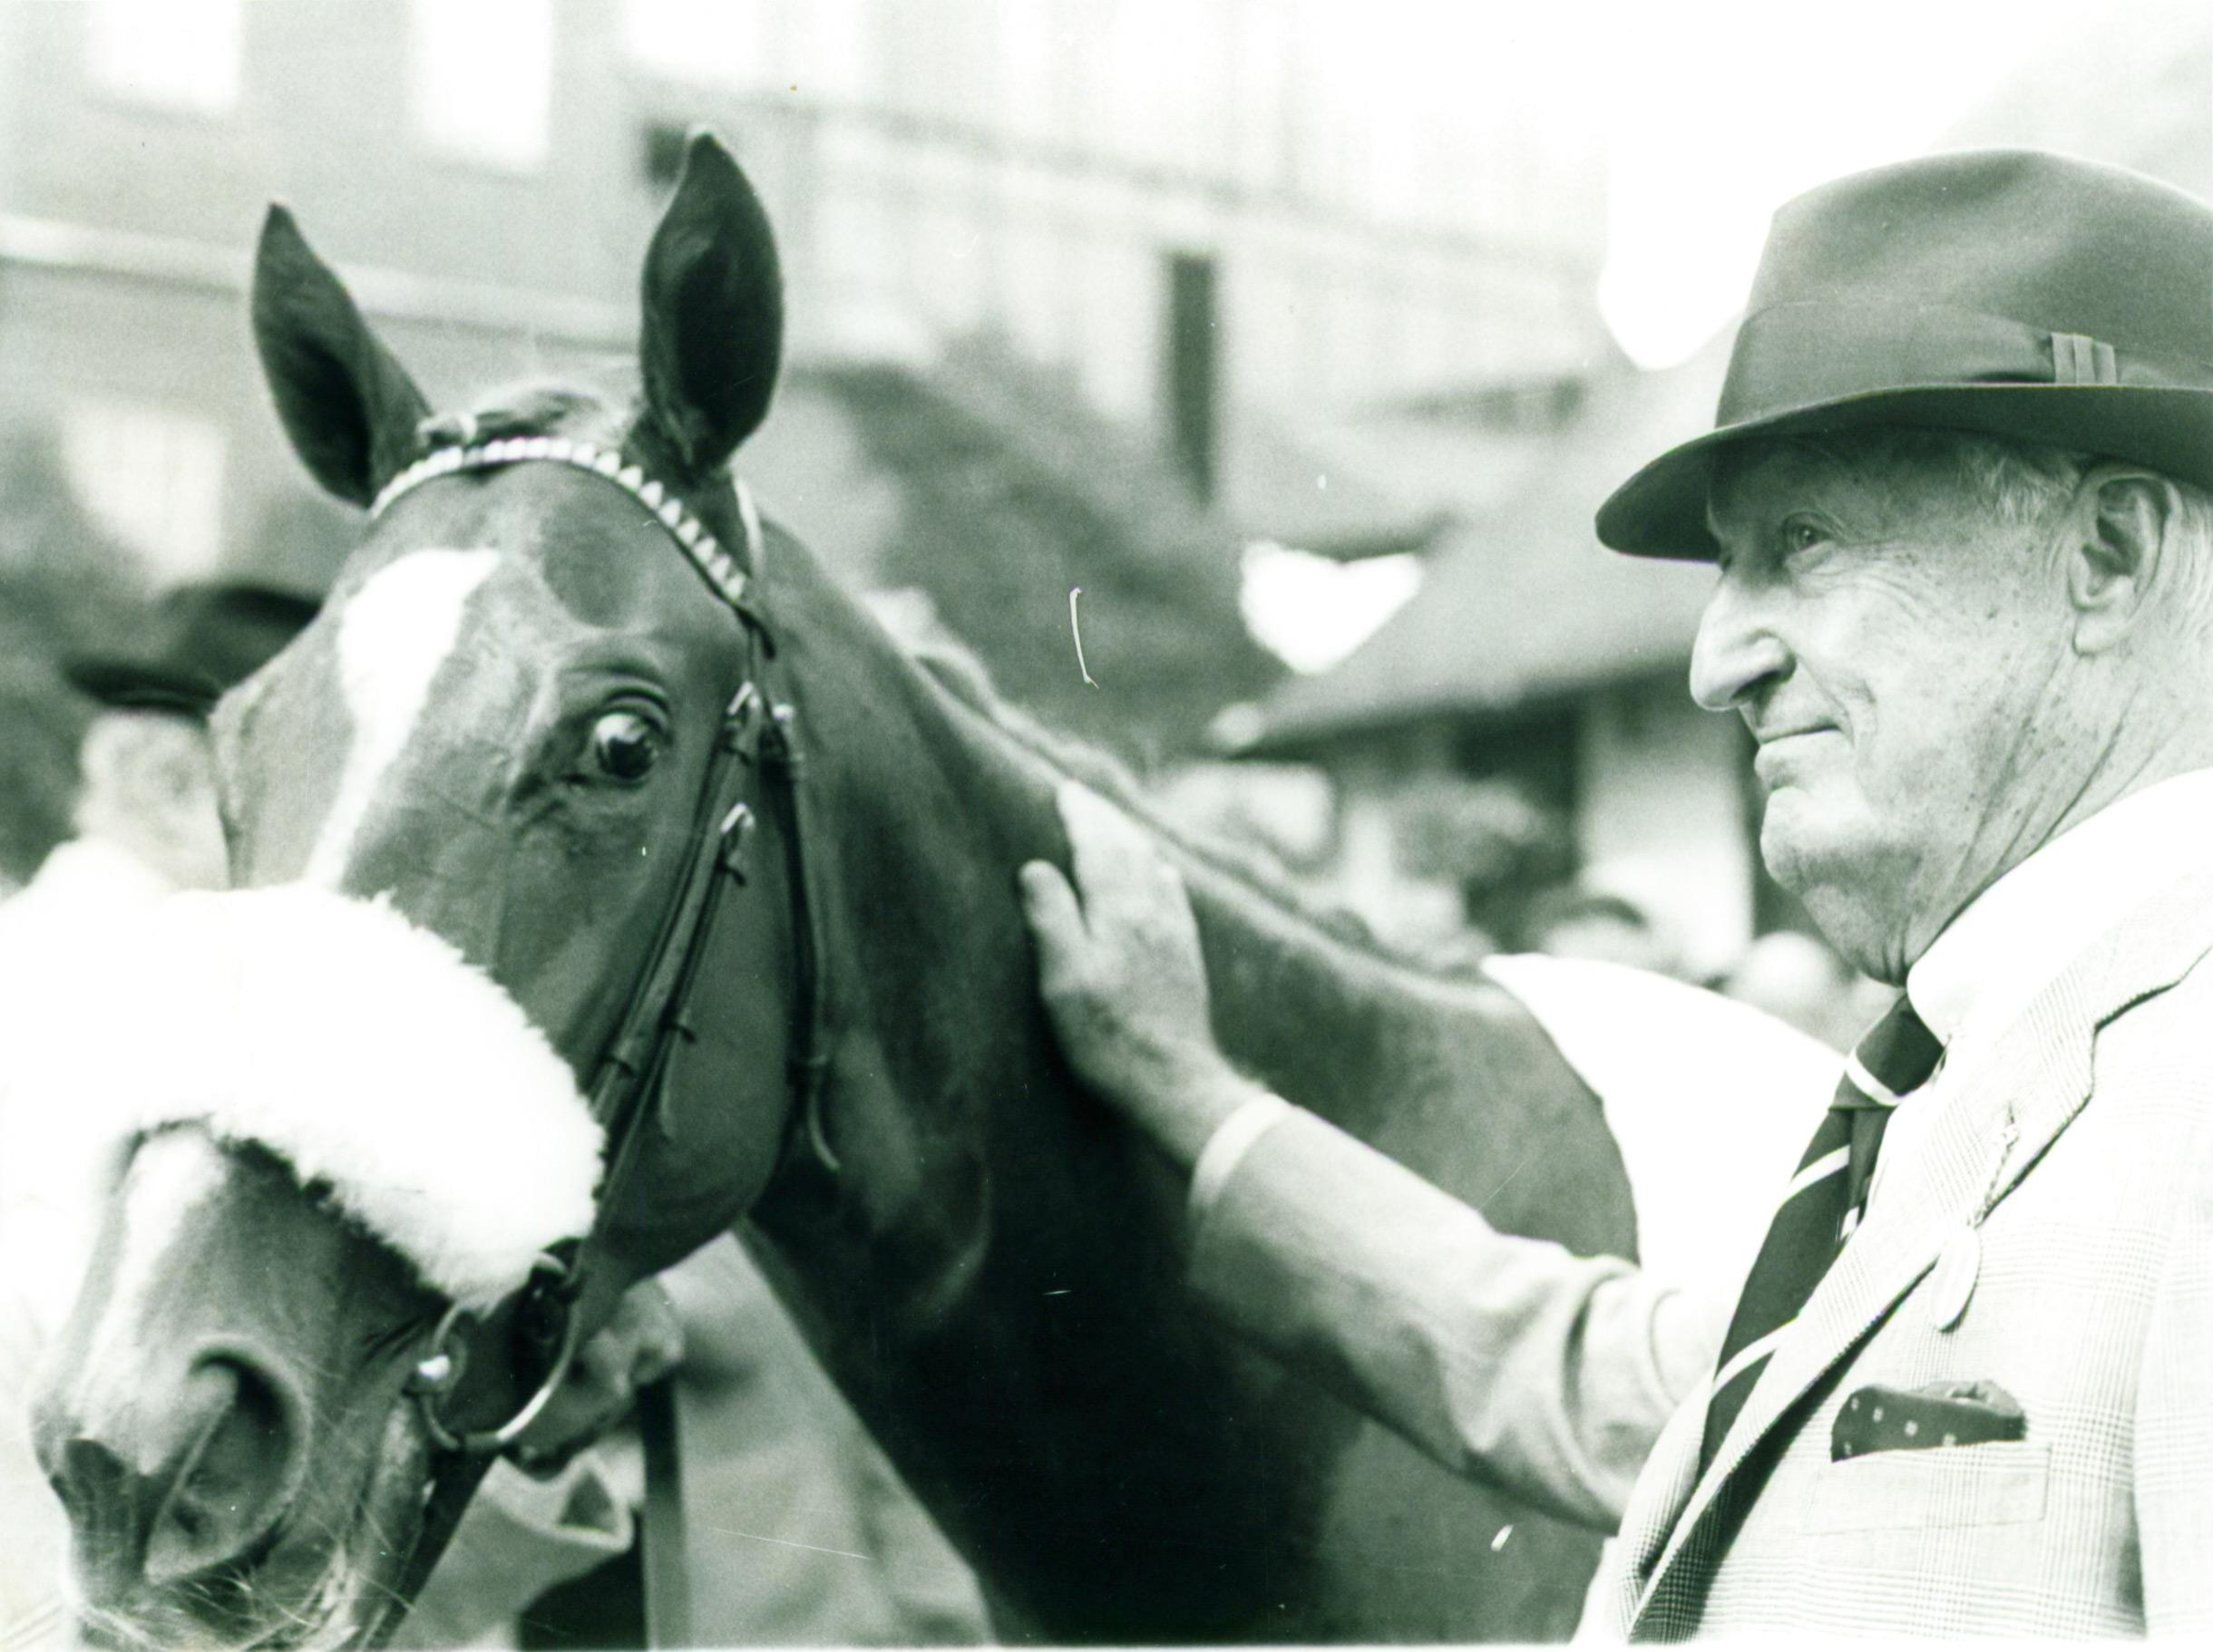 Paul Mellon and Forest Flower